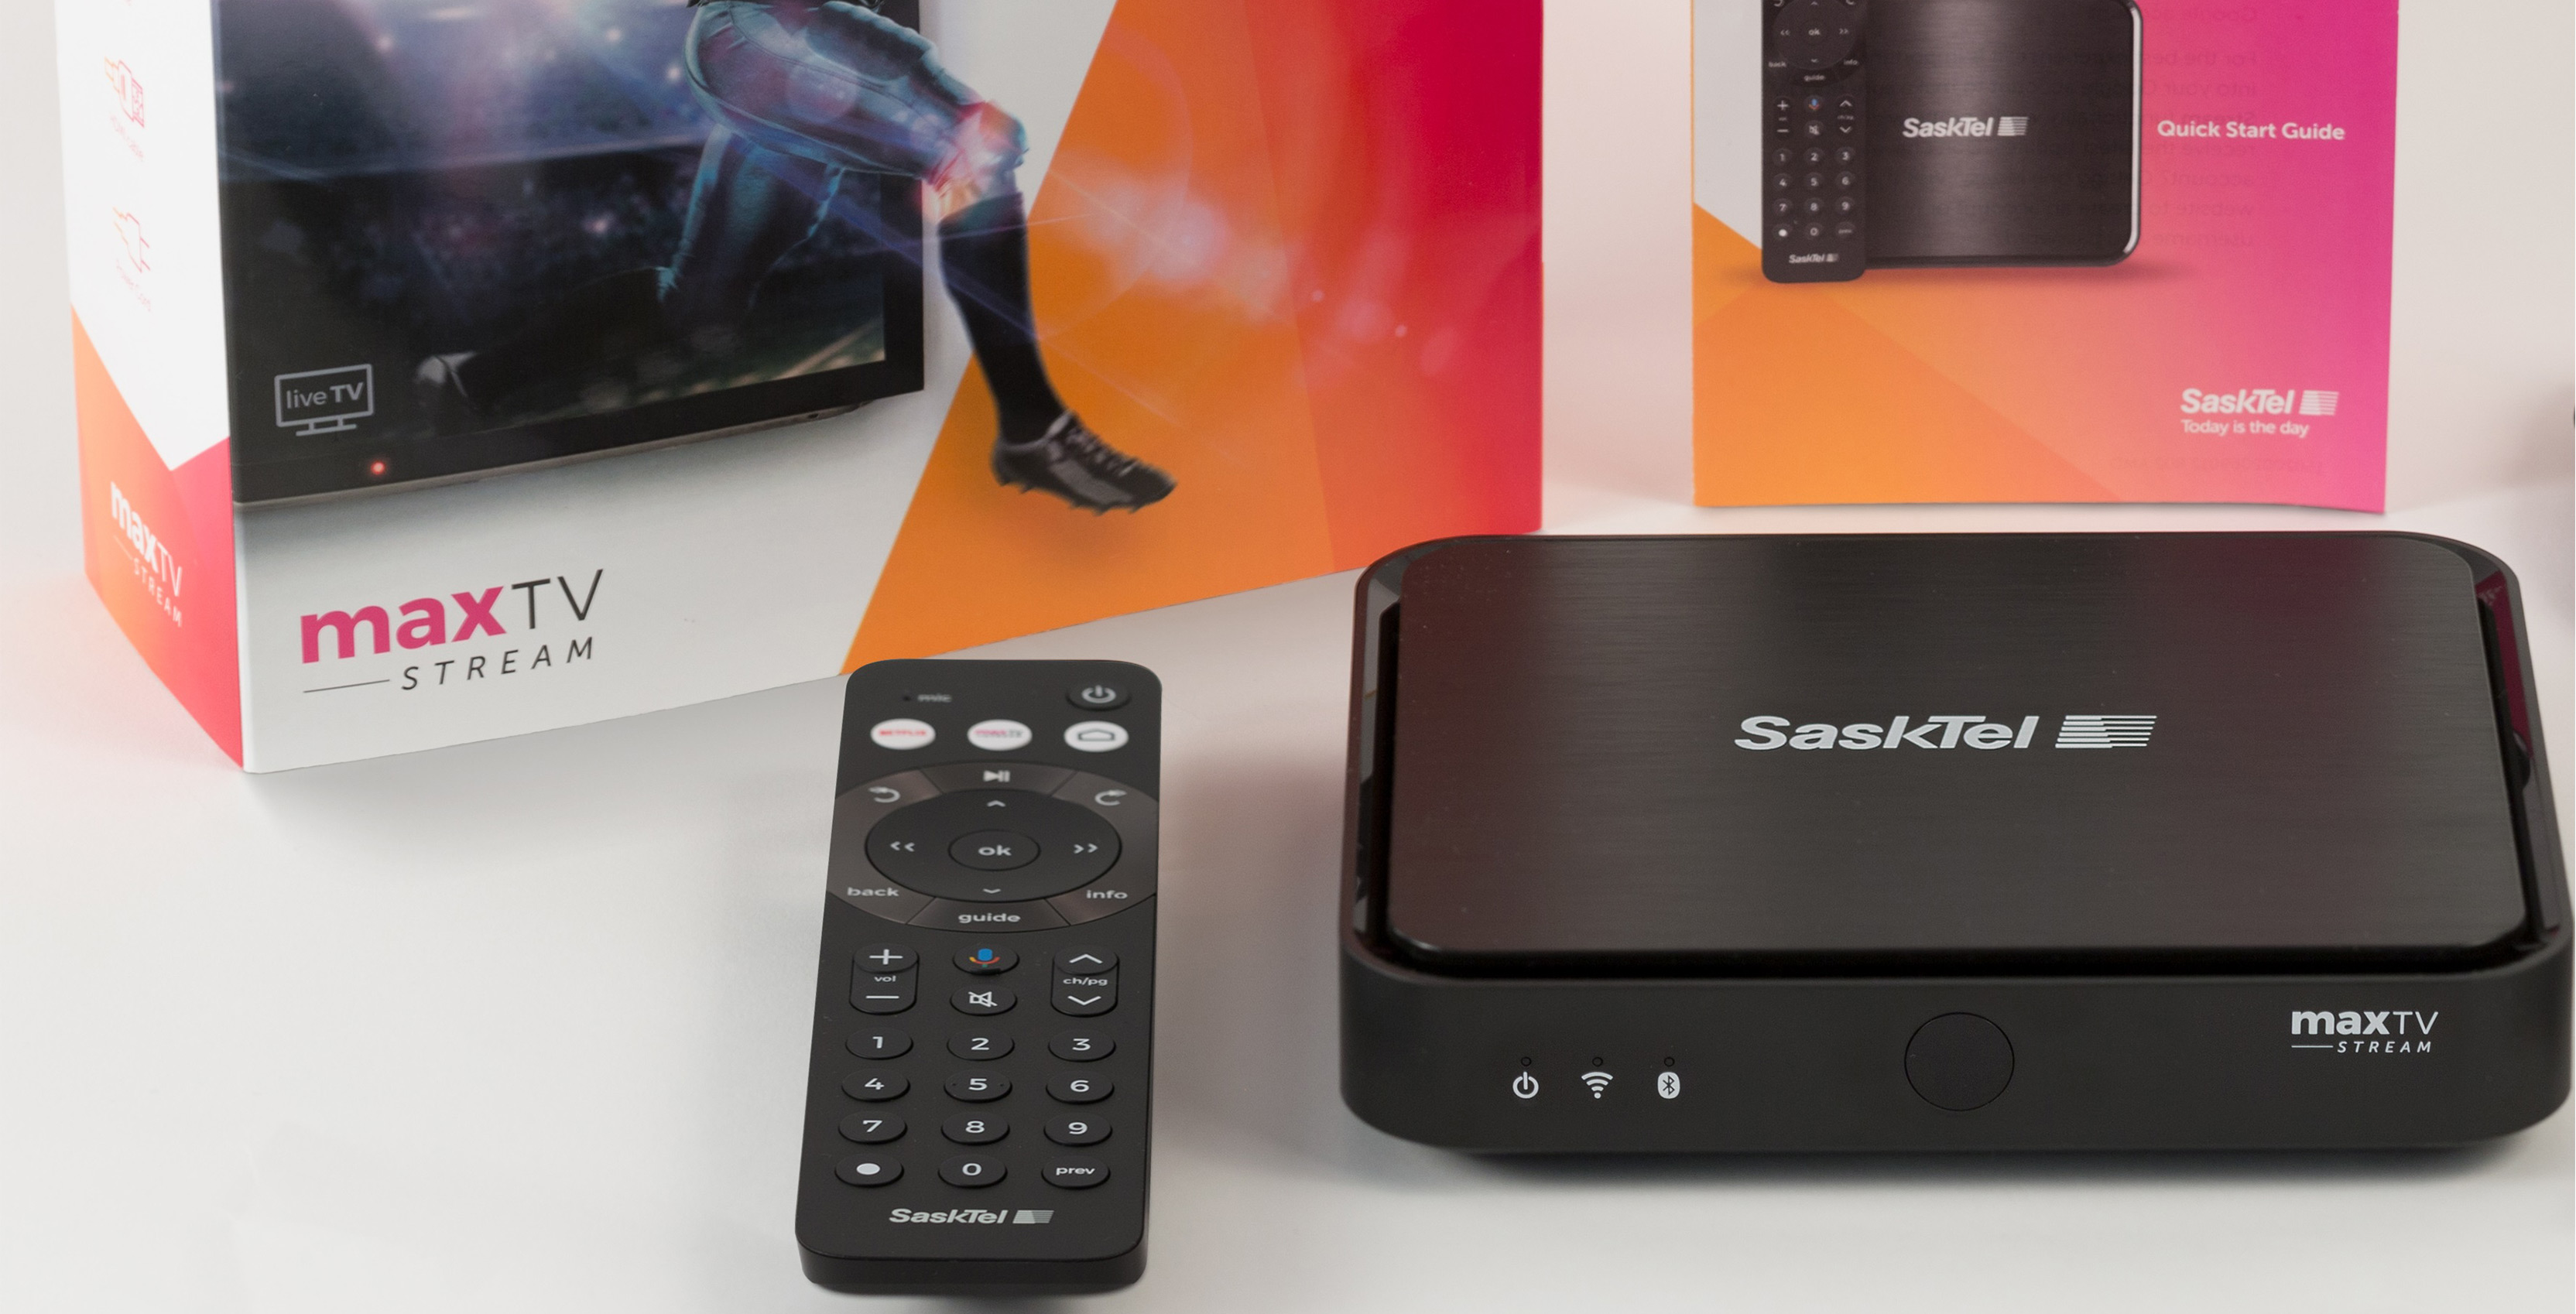 SaskTel launches maxTV Stream IPTV service in 19 more